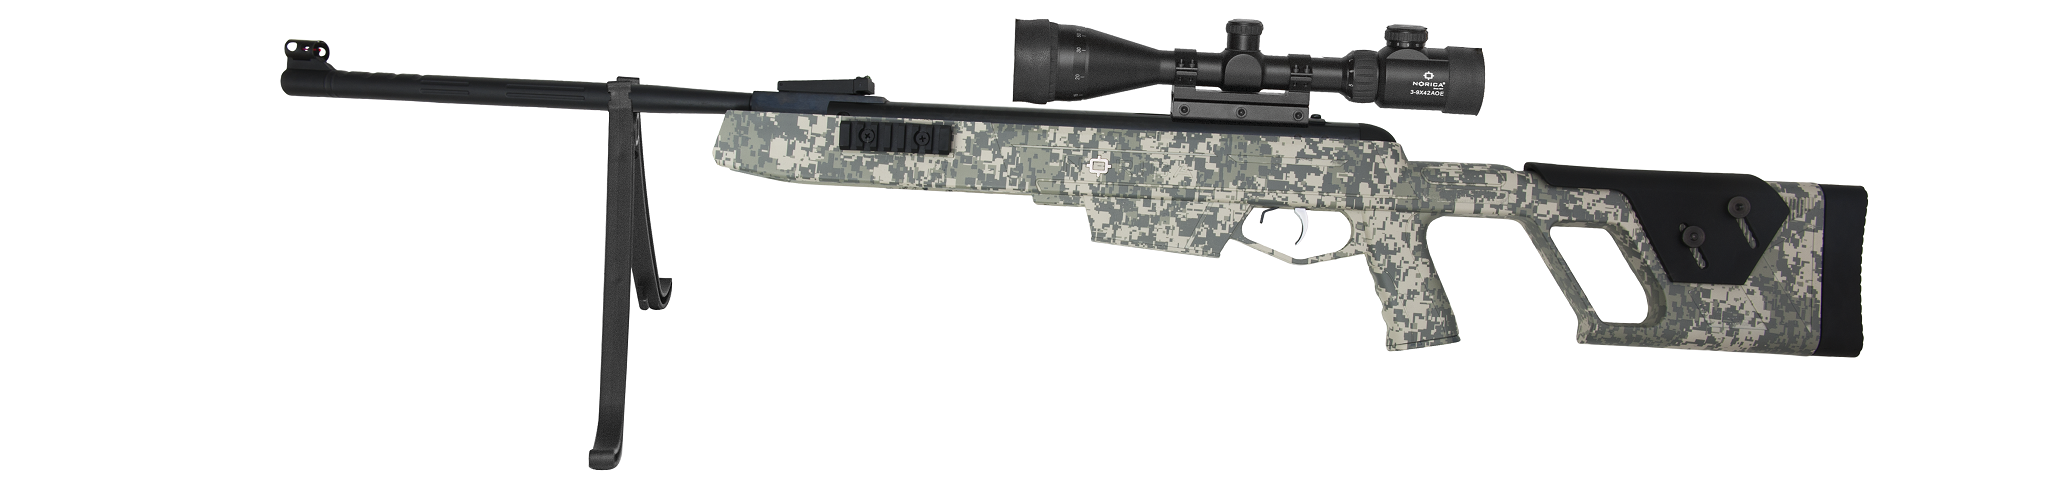 NORICA CARBINE PACK DEAD EYE GRS CAMO 4,5 MM(CARBINE DEAD EYE GRS CAMO + BIPOD)